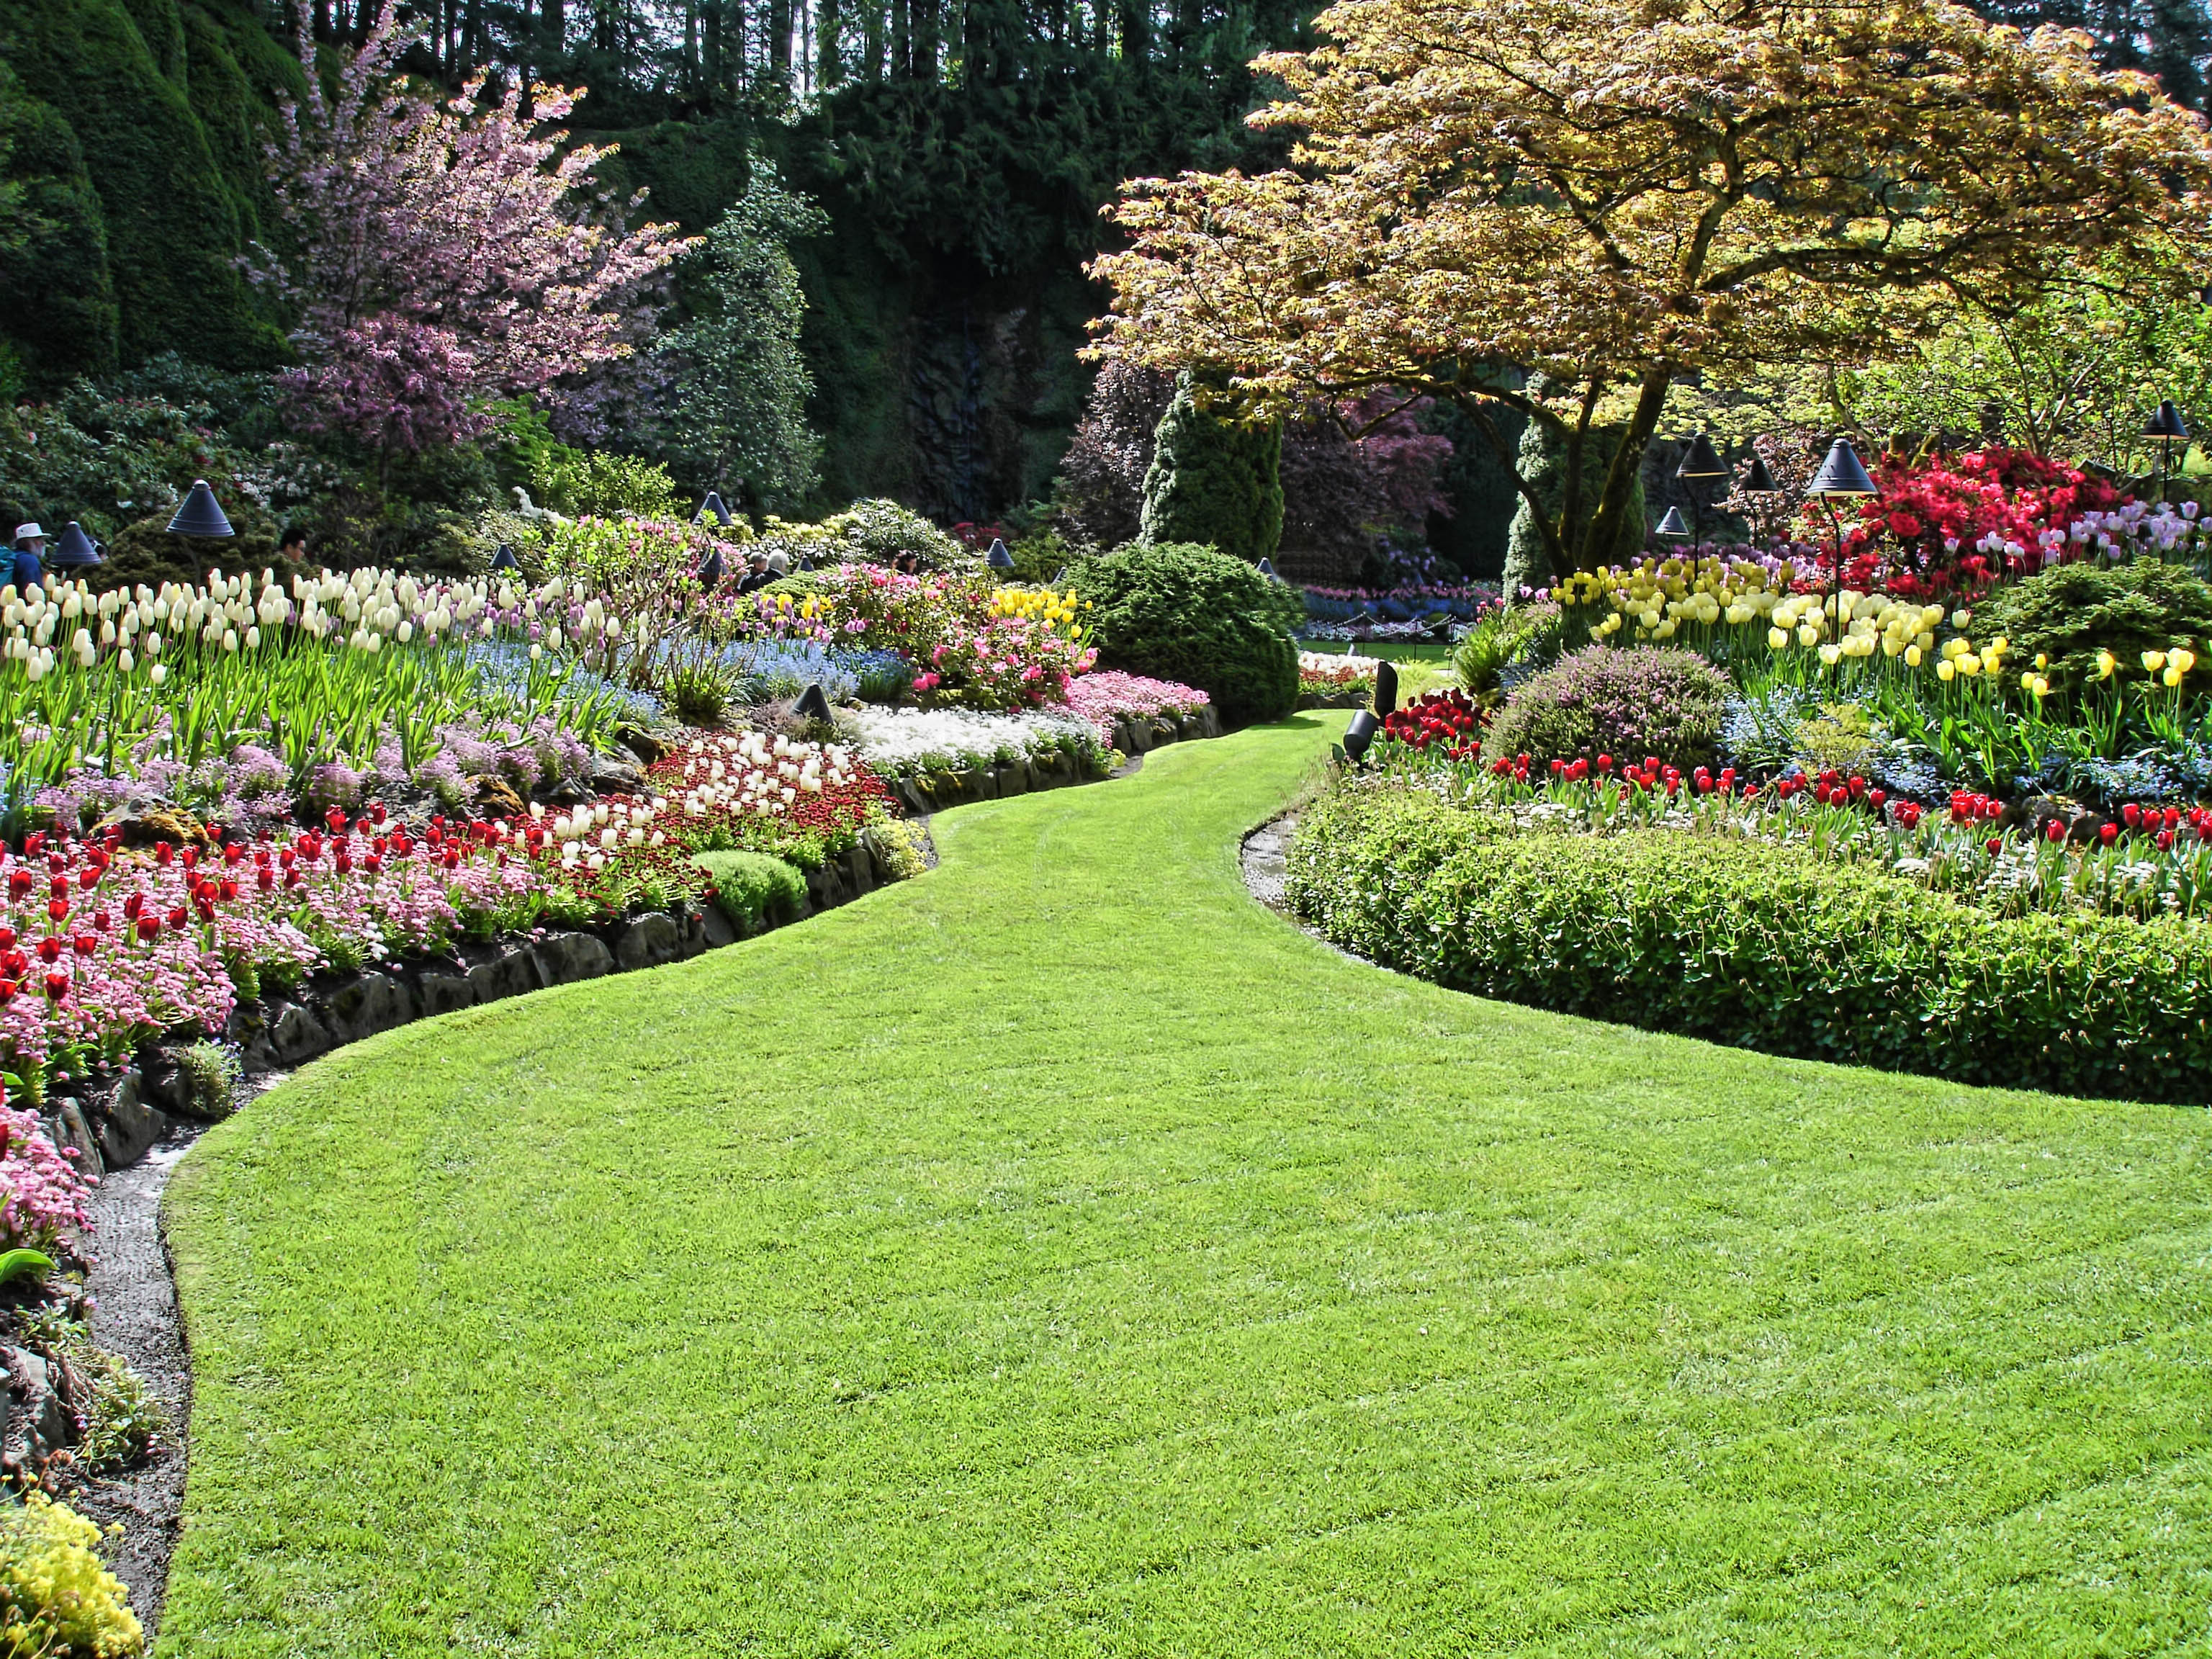 Seek Effective Landscaping Design, Installation, and Lawn Maintenance  Services for Your Home - WanderGlobe